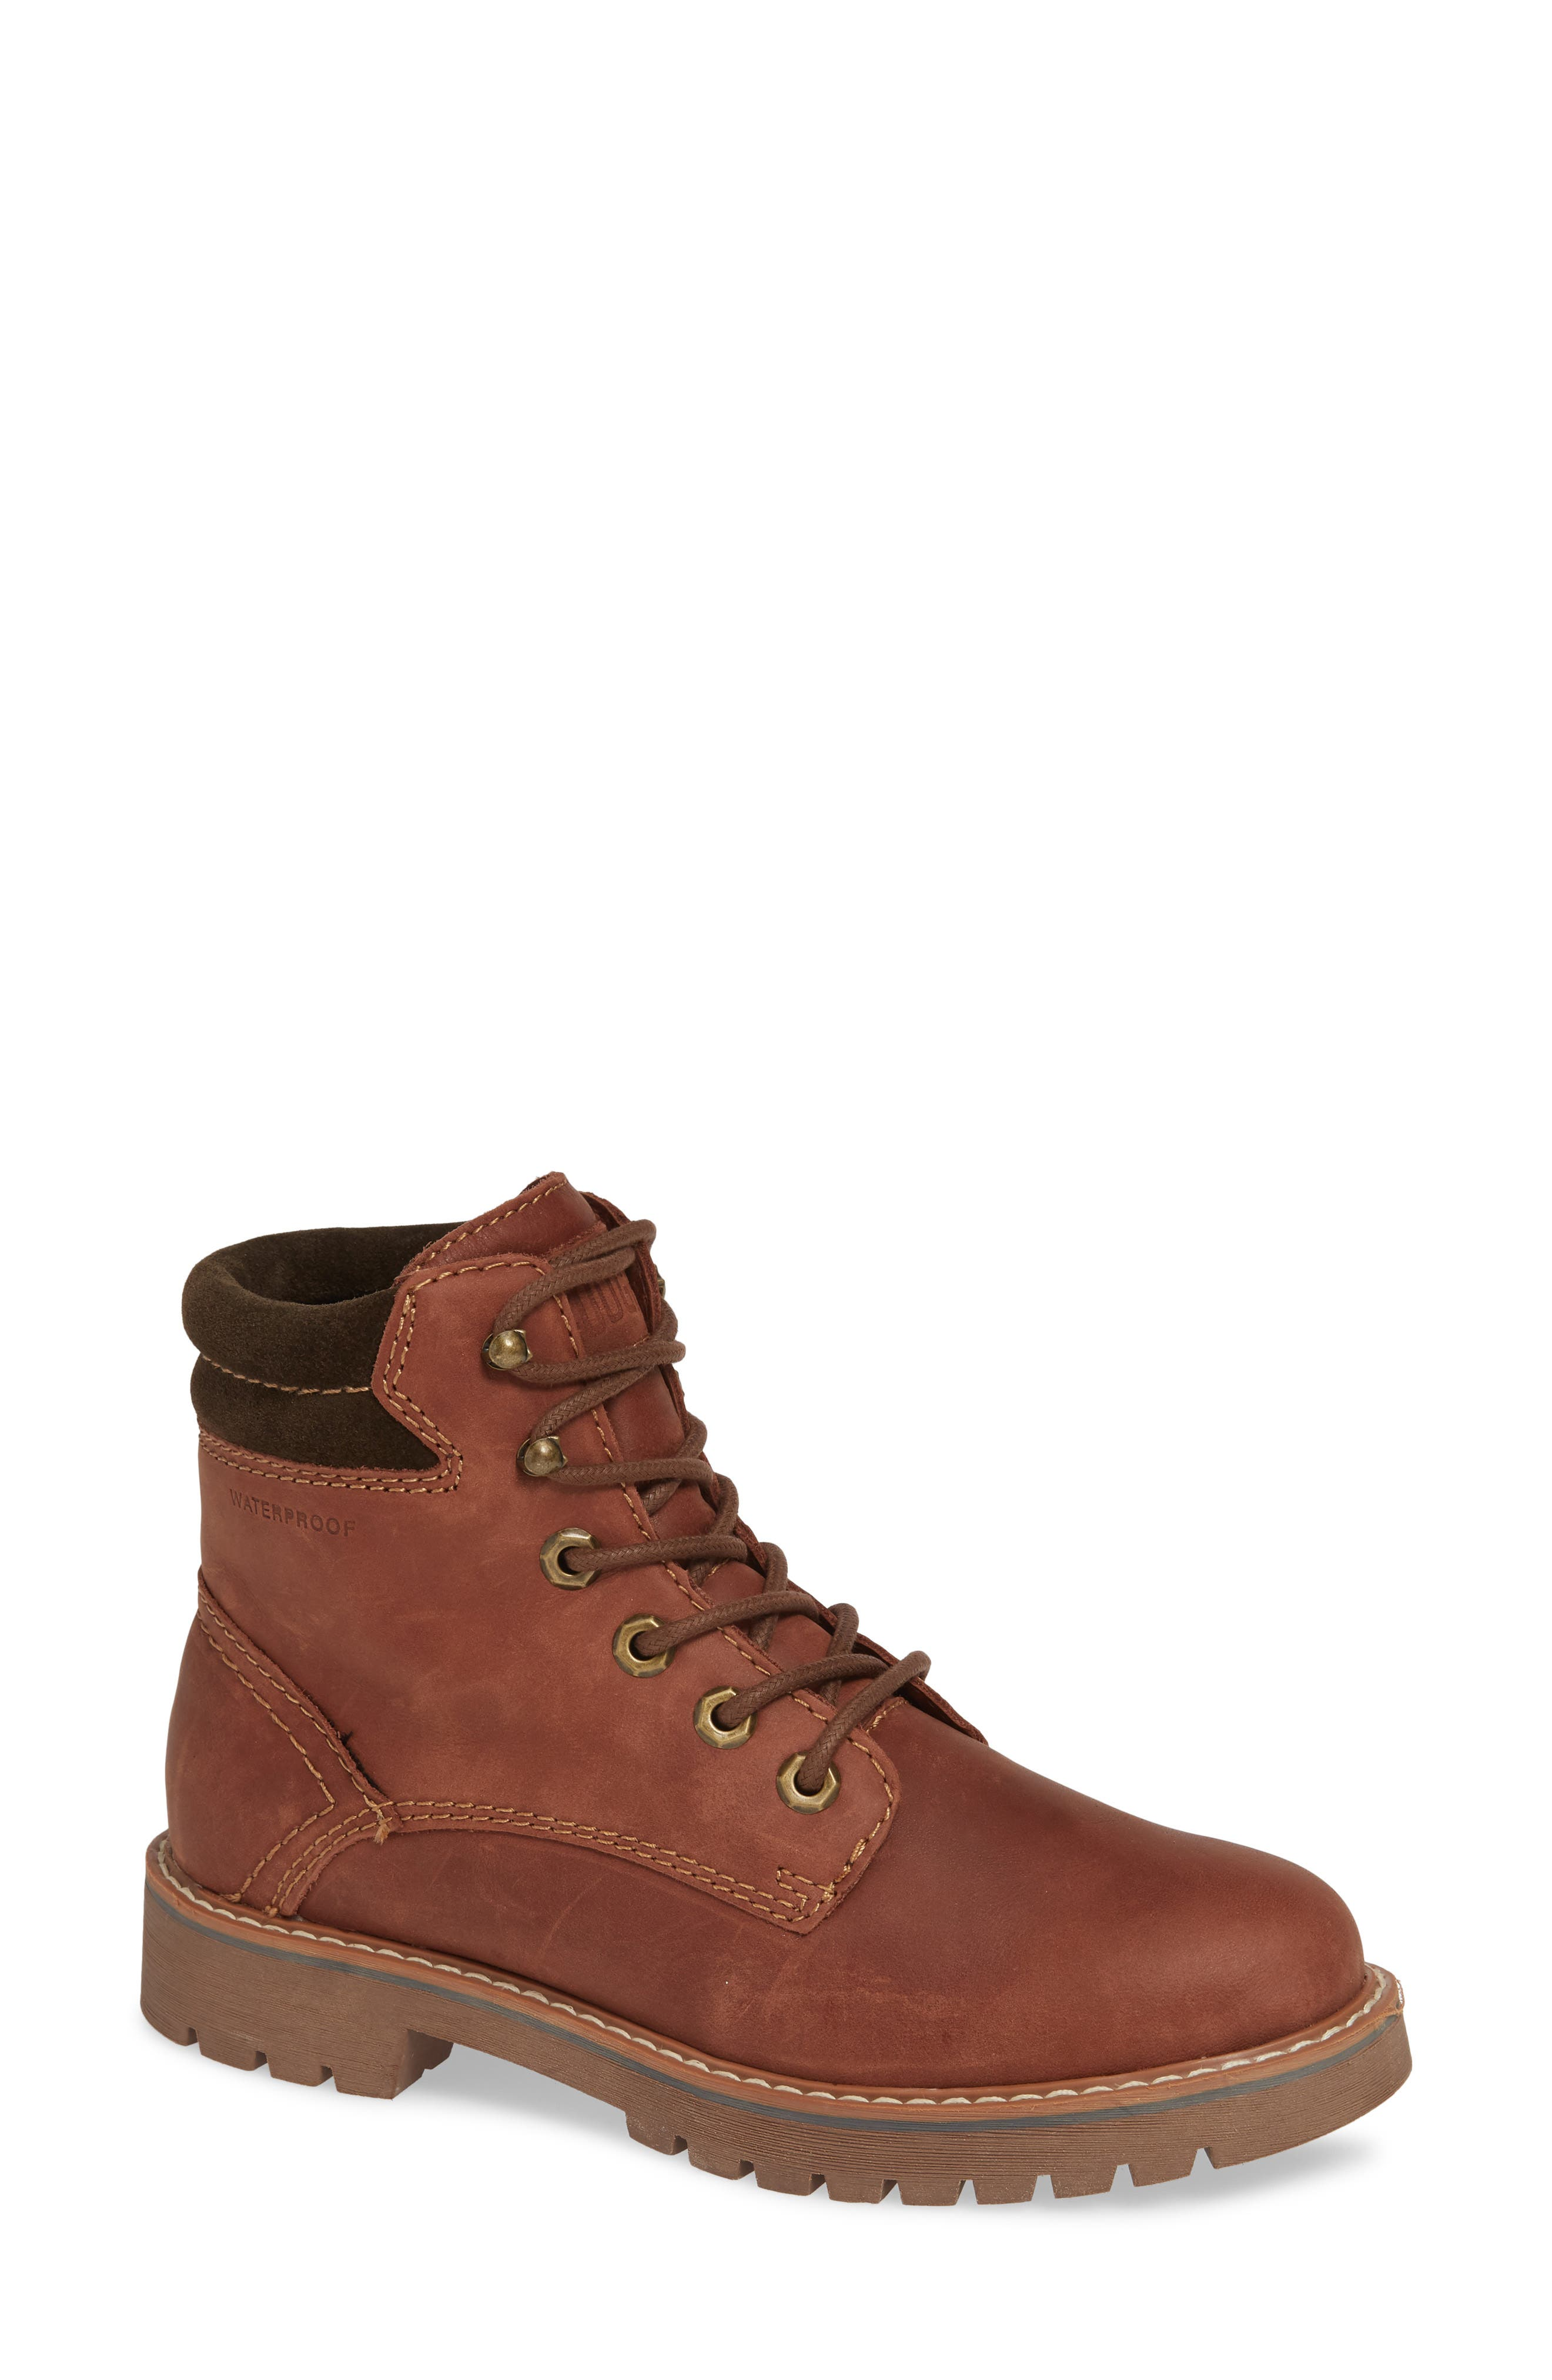 Heston Waterproof Insulated Hiking Boot,                         Main,                         color, BROWN LEATHER